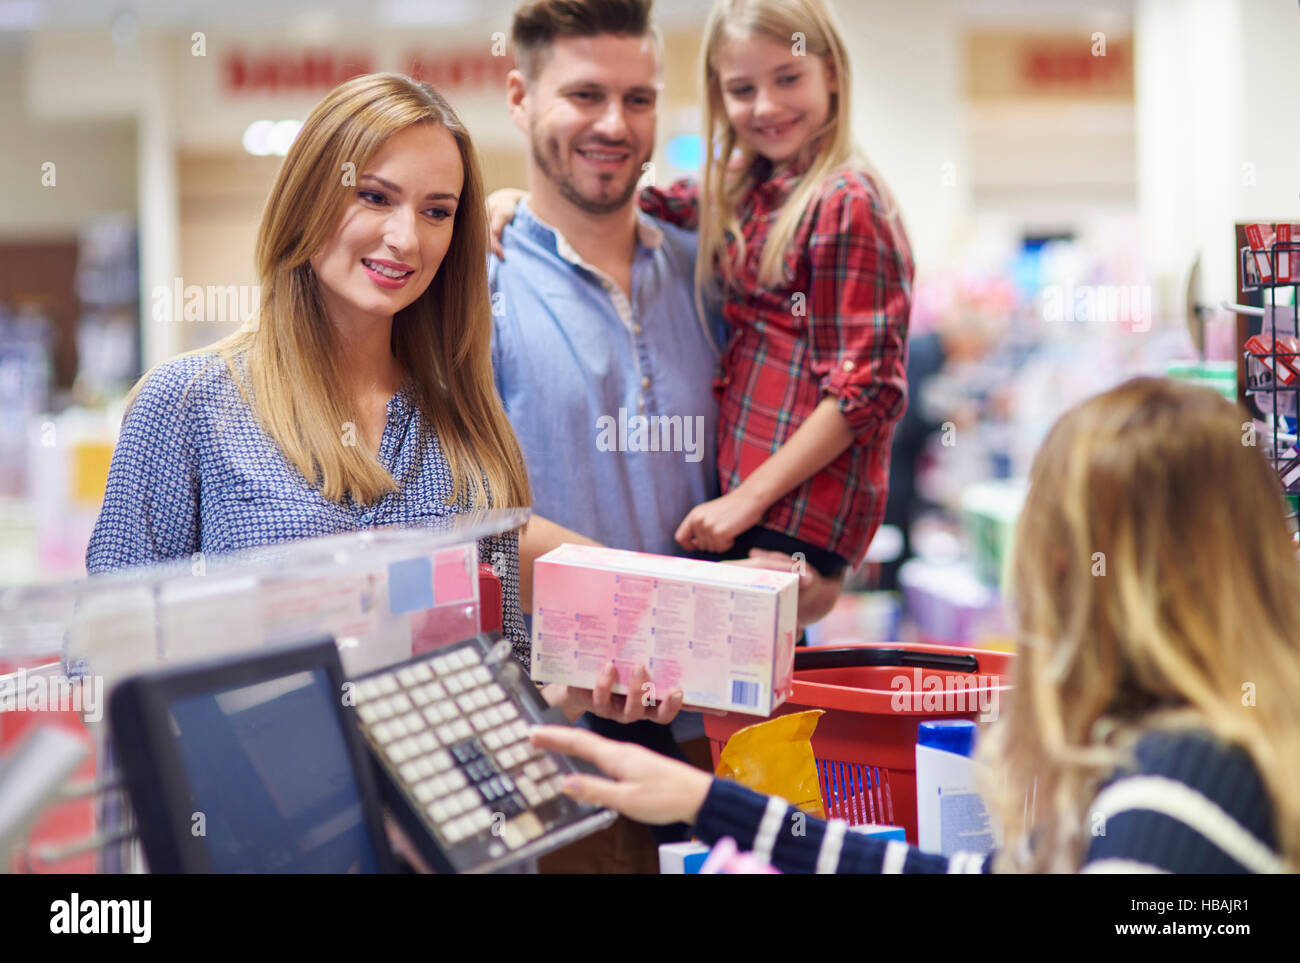 Family packing shopping at supermarket checkout - Stock Image